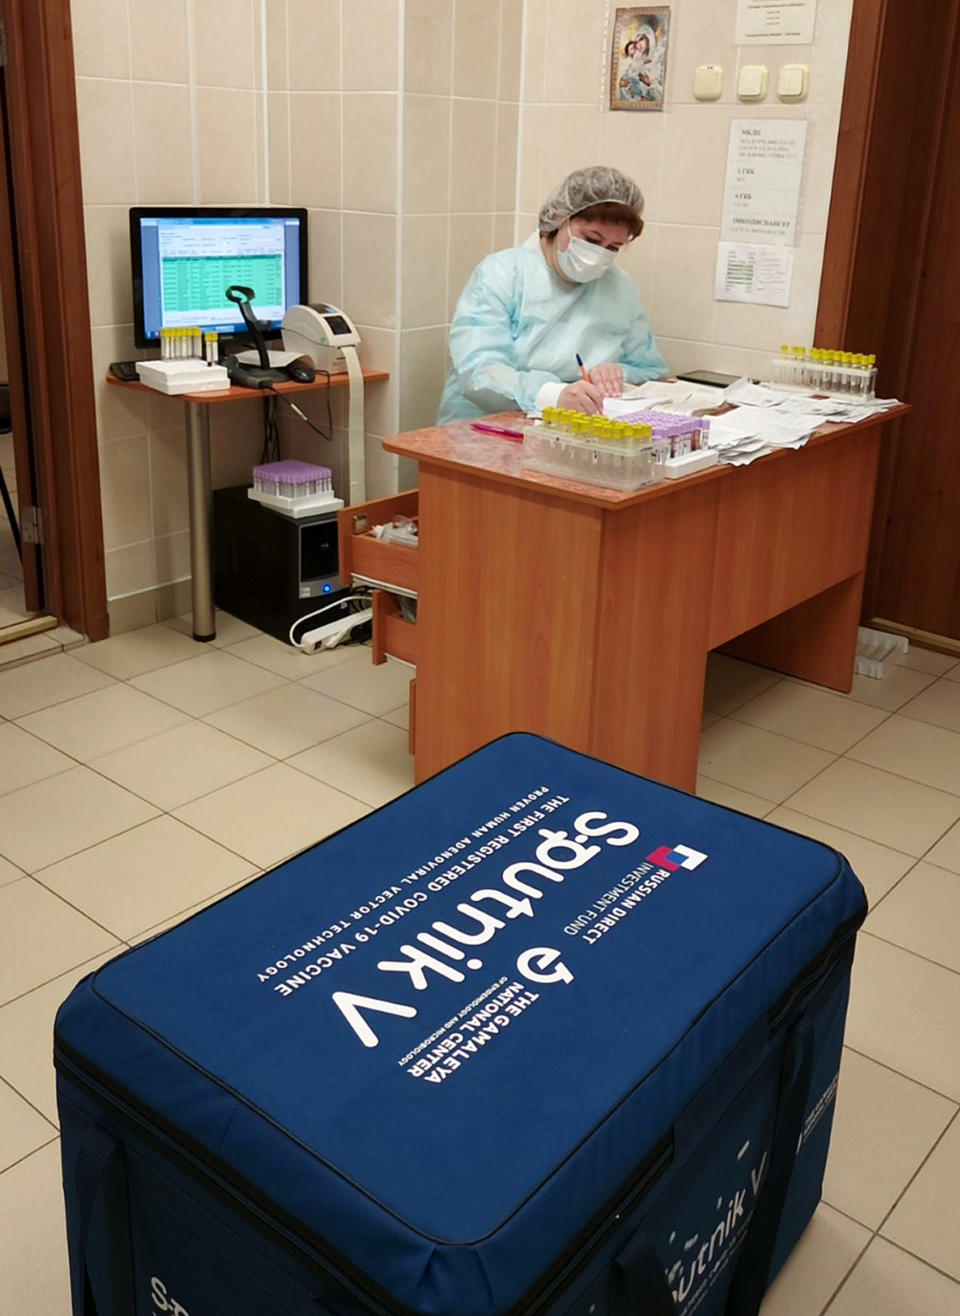 In this handout photo released by Belarus Health Ministry, Belarus medical worker works with the documentation of the Russia's Sputnik V coronavirus vaccine in Minsk, Belarus, Tuesday, Dec. 29, 2020. Belarus has announced the start of mass coronavirus vaccinations with the Russian-developed Sputnik V shot, becoming the second country after Russia to roll out the vaccine that is still undergoing late-stage studies to ensure its safety and efficacy. (Julia Borodun/ Belarus Health Ministry via AP)